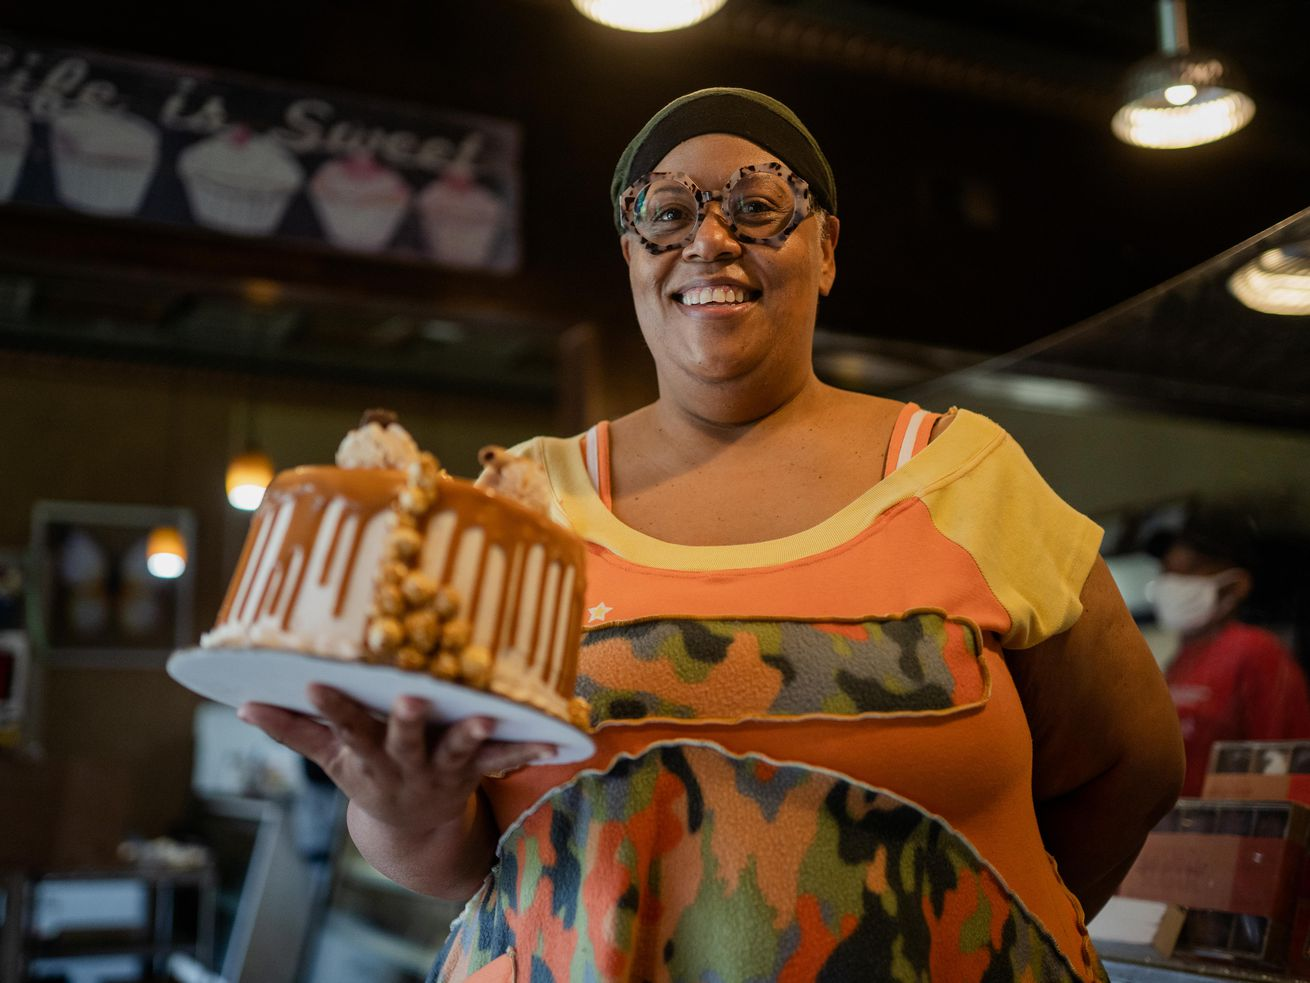 After Kamala Harris visit, business jumps at Brown Sugar Bakery on Chicago's South Side